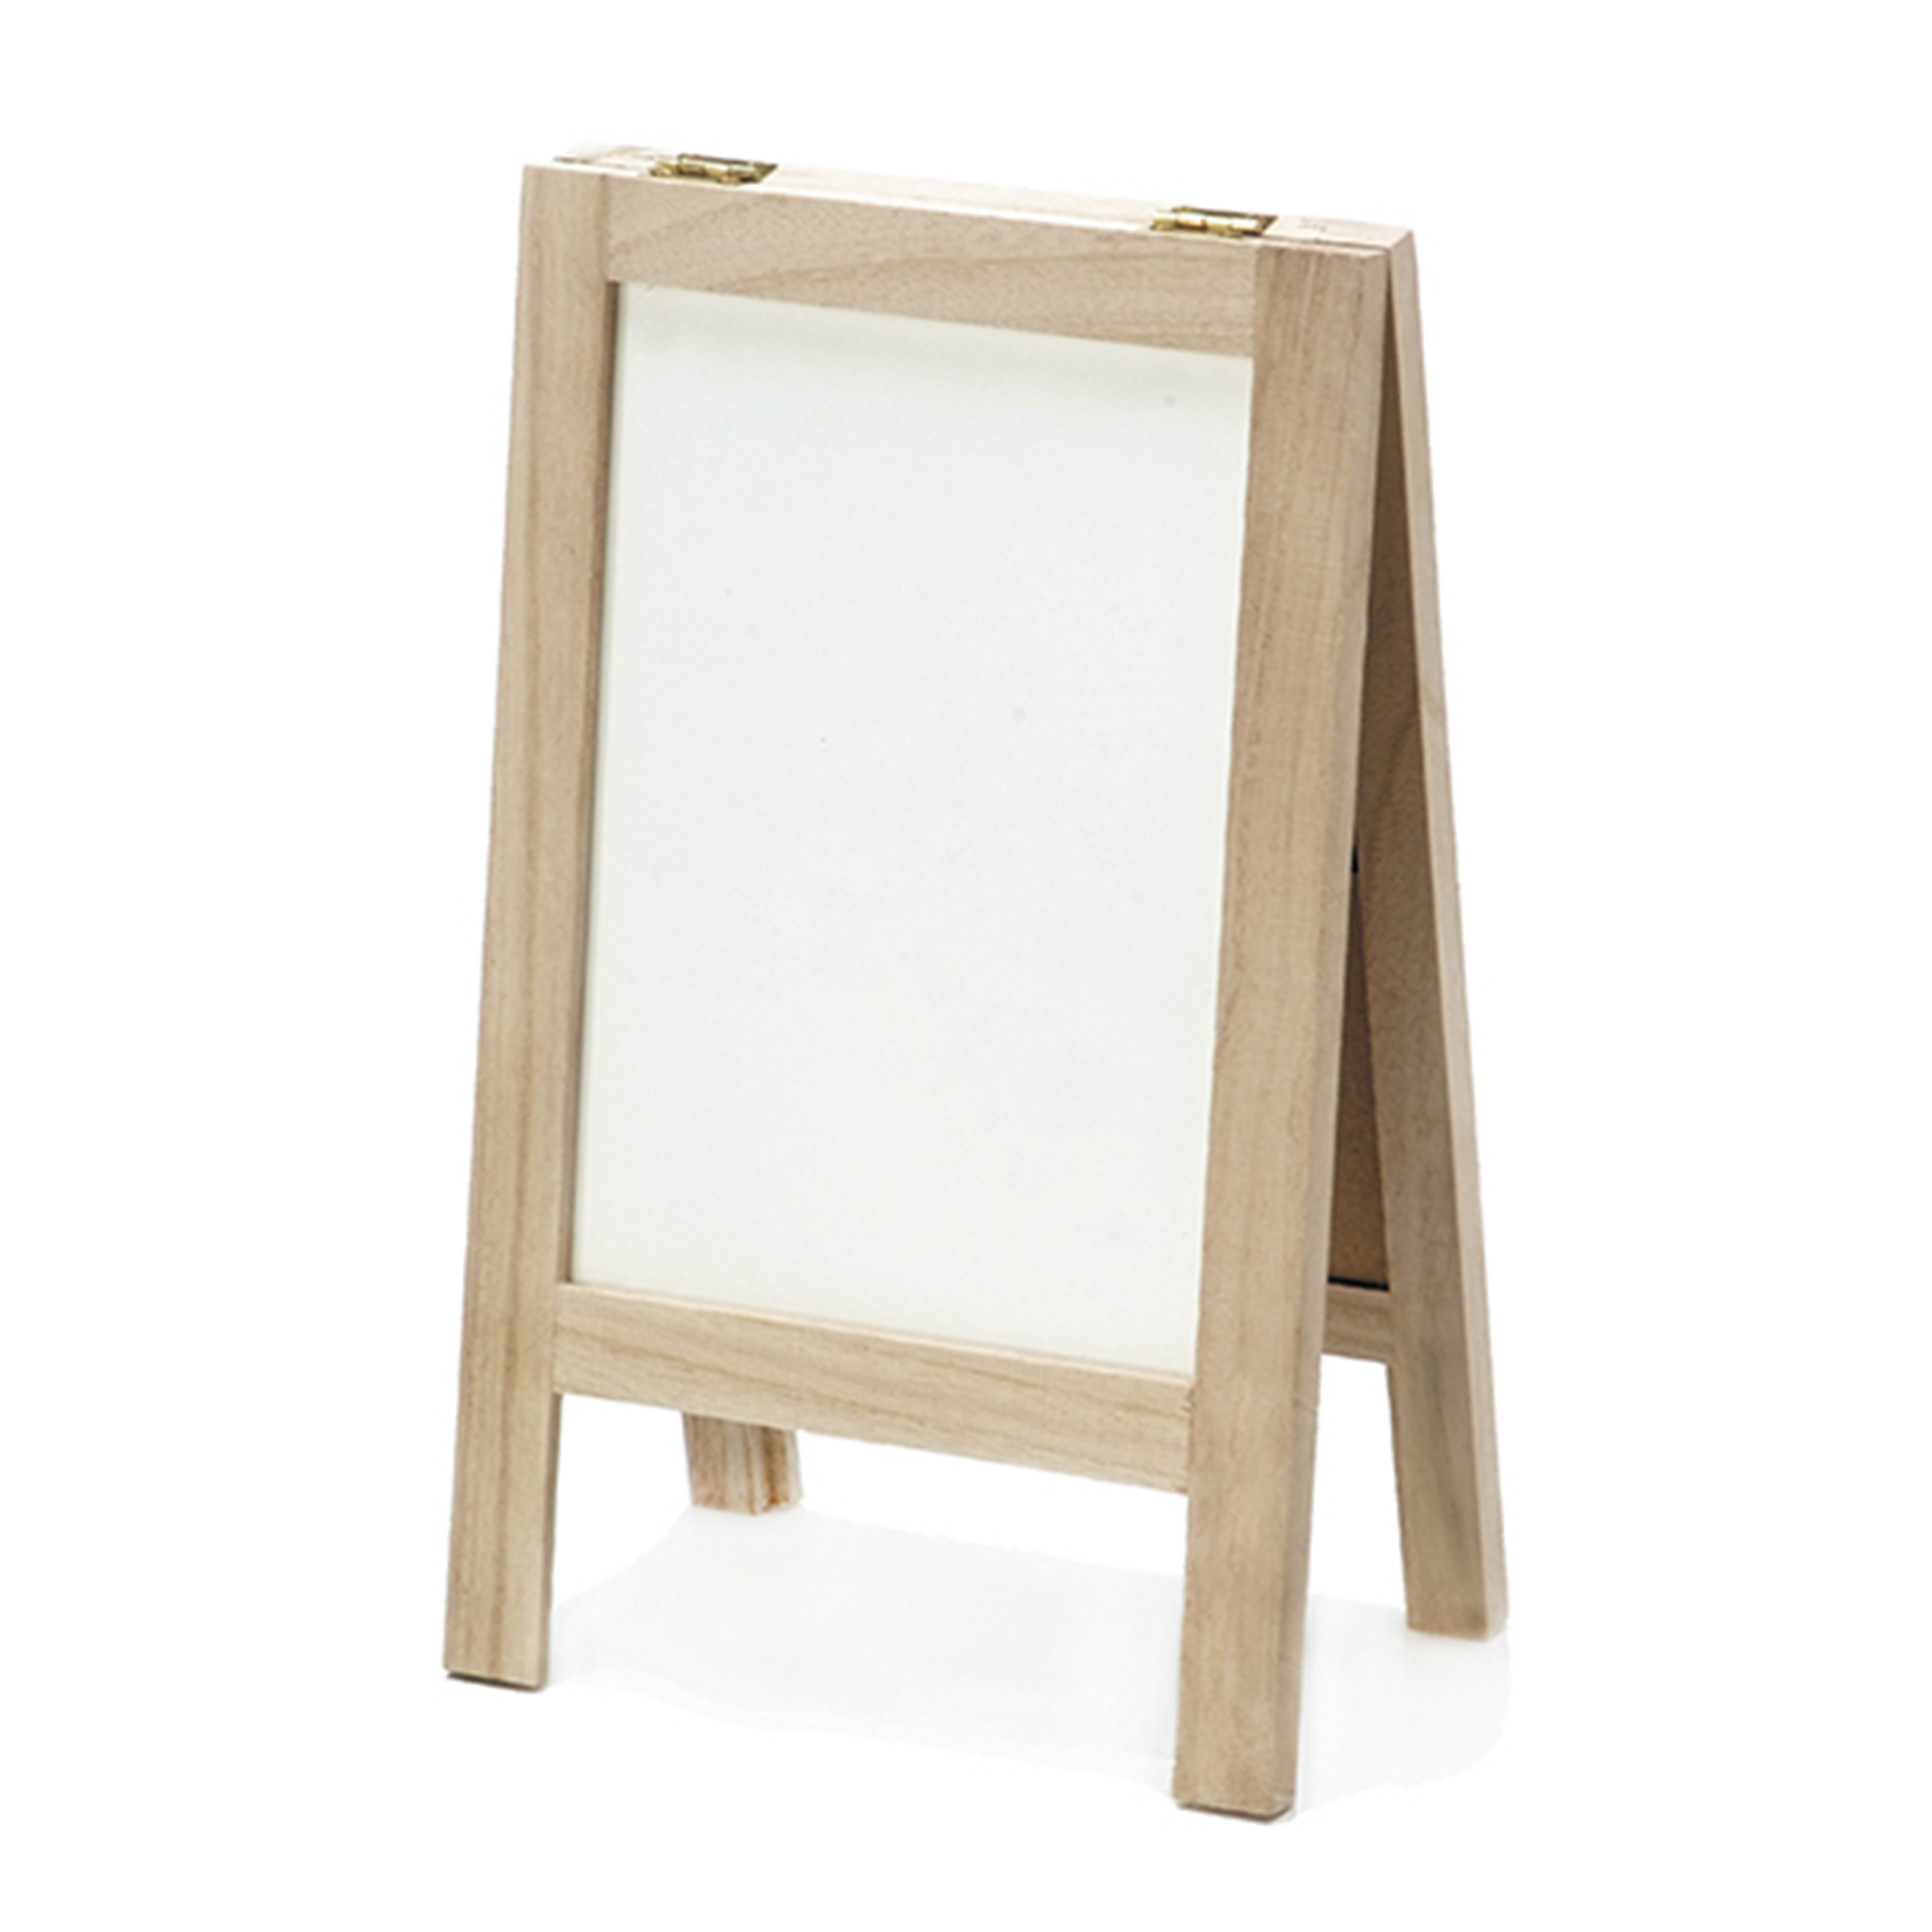 Unfinished Frame Easel Double Sided